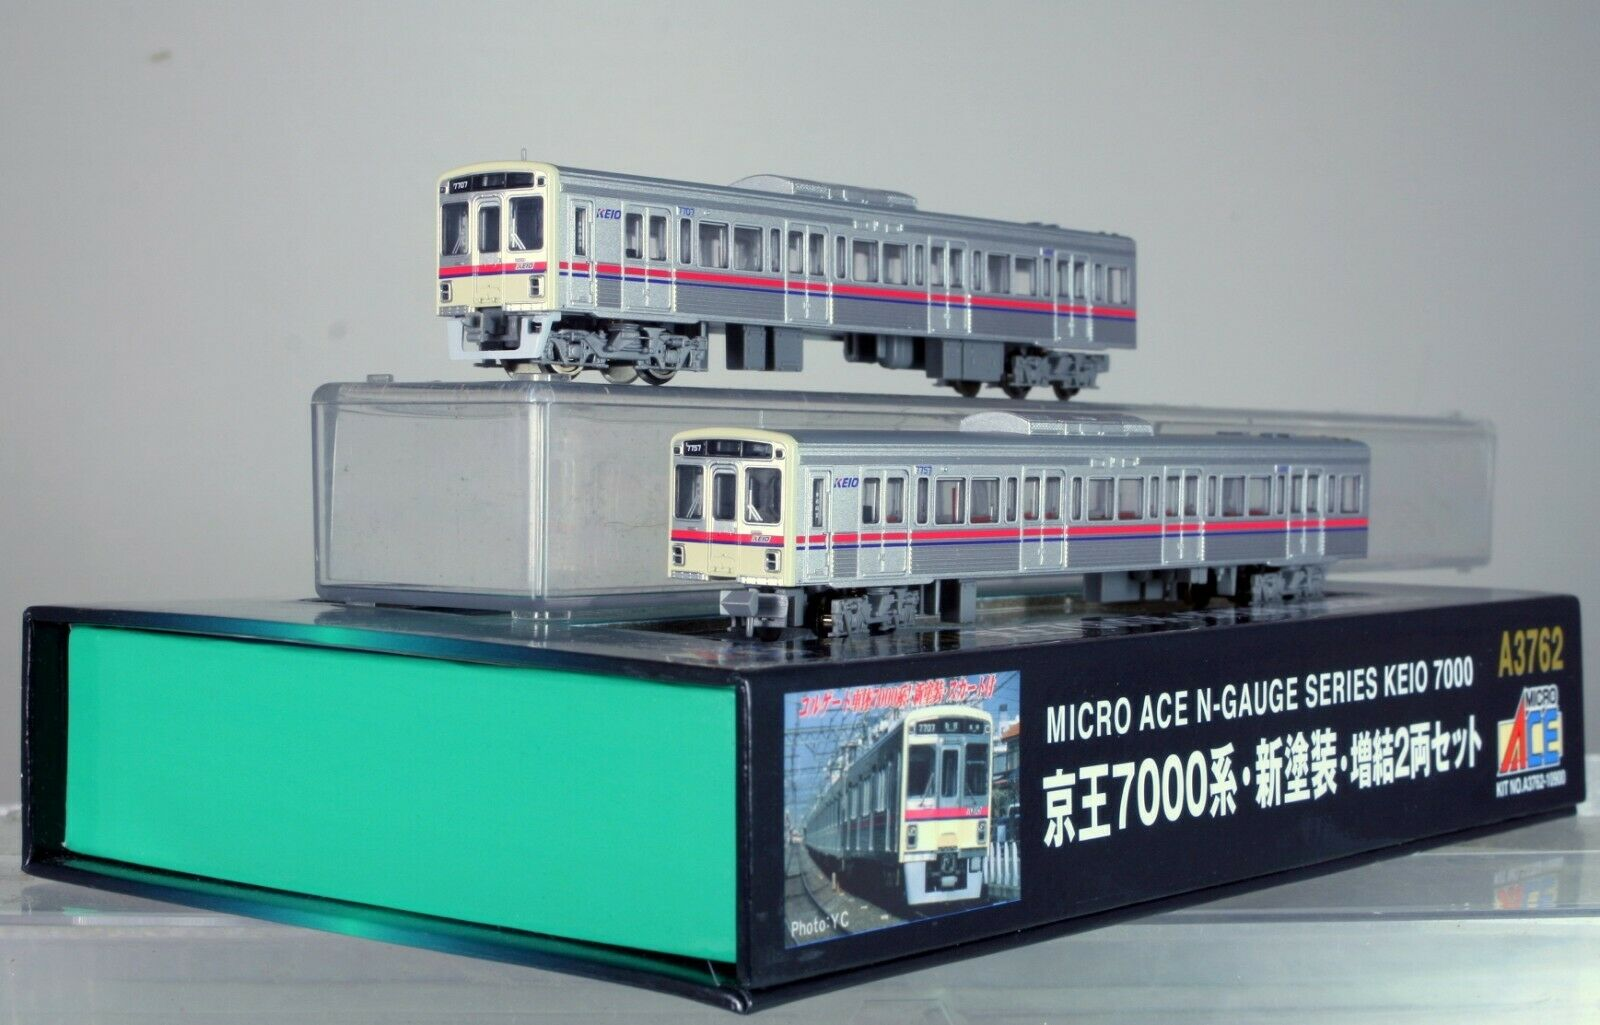 Microace  N  A3762 Keio Series 7000 New color (Add-On 2-Car Set) (Model Train)